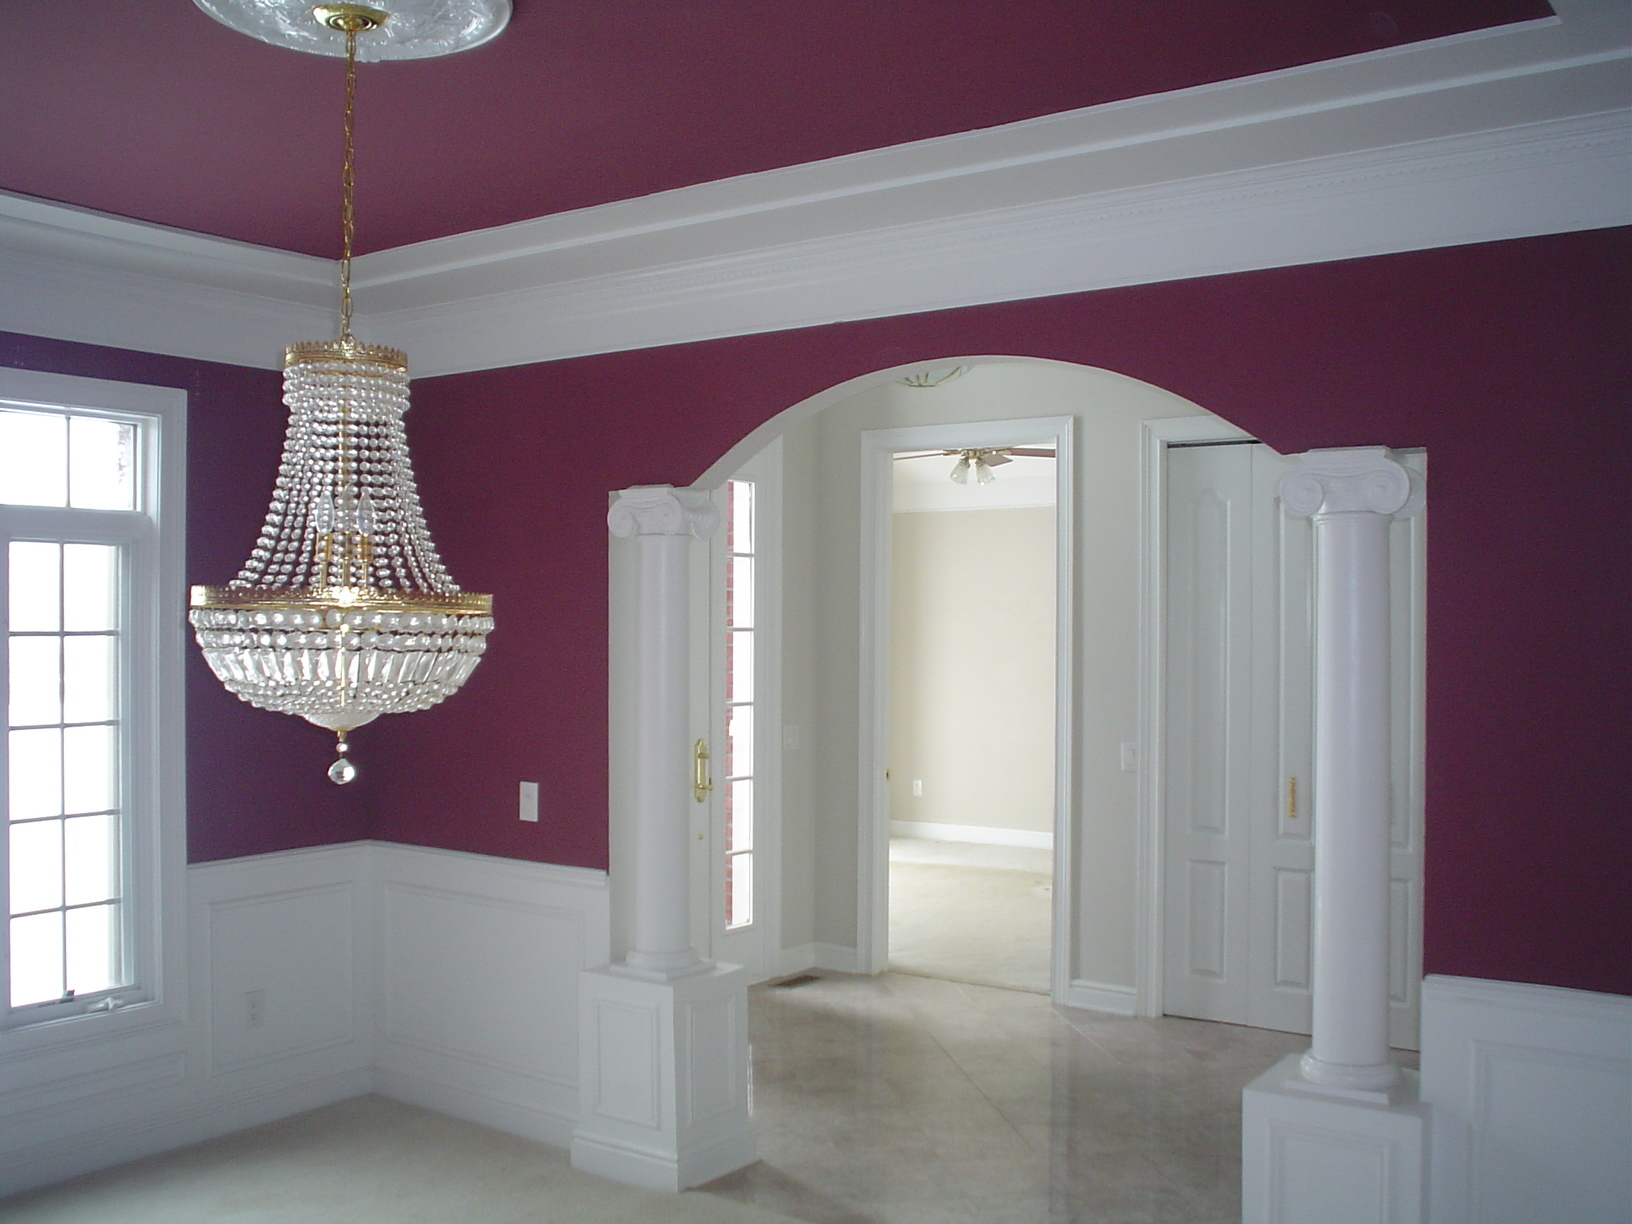 Door installation, Crown Molding, Wainscoting, Handrails,